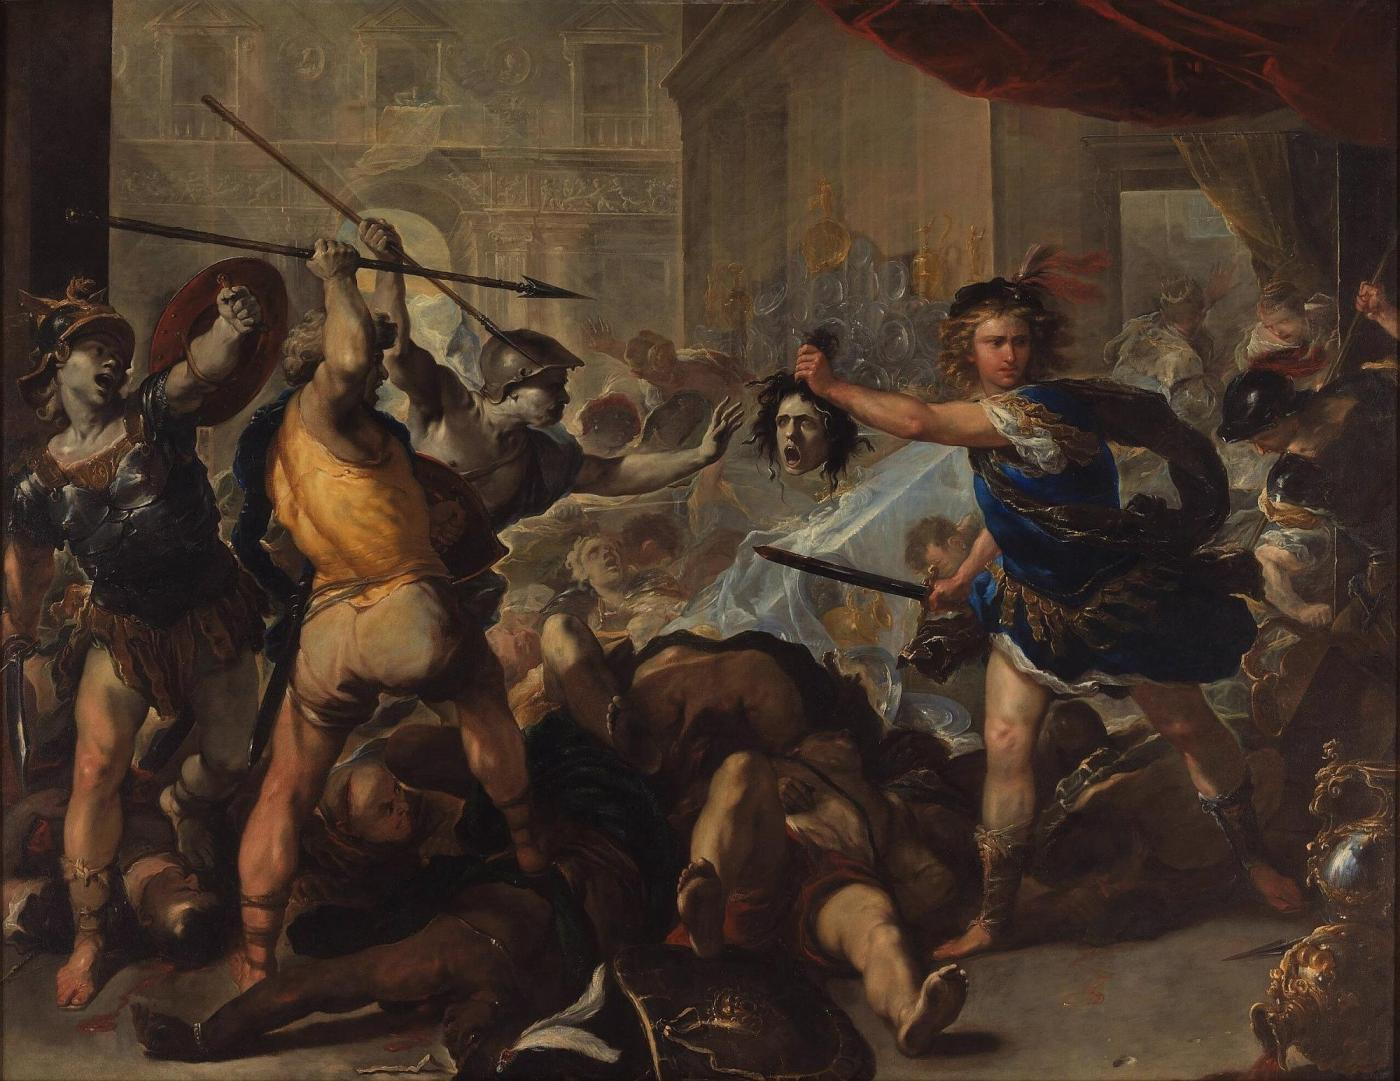 luca giordano perseus turning phineas and his followers to stone